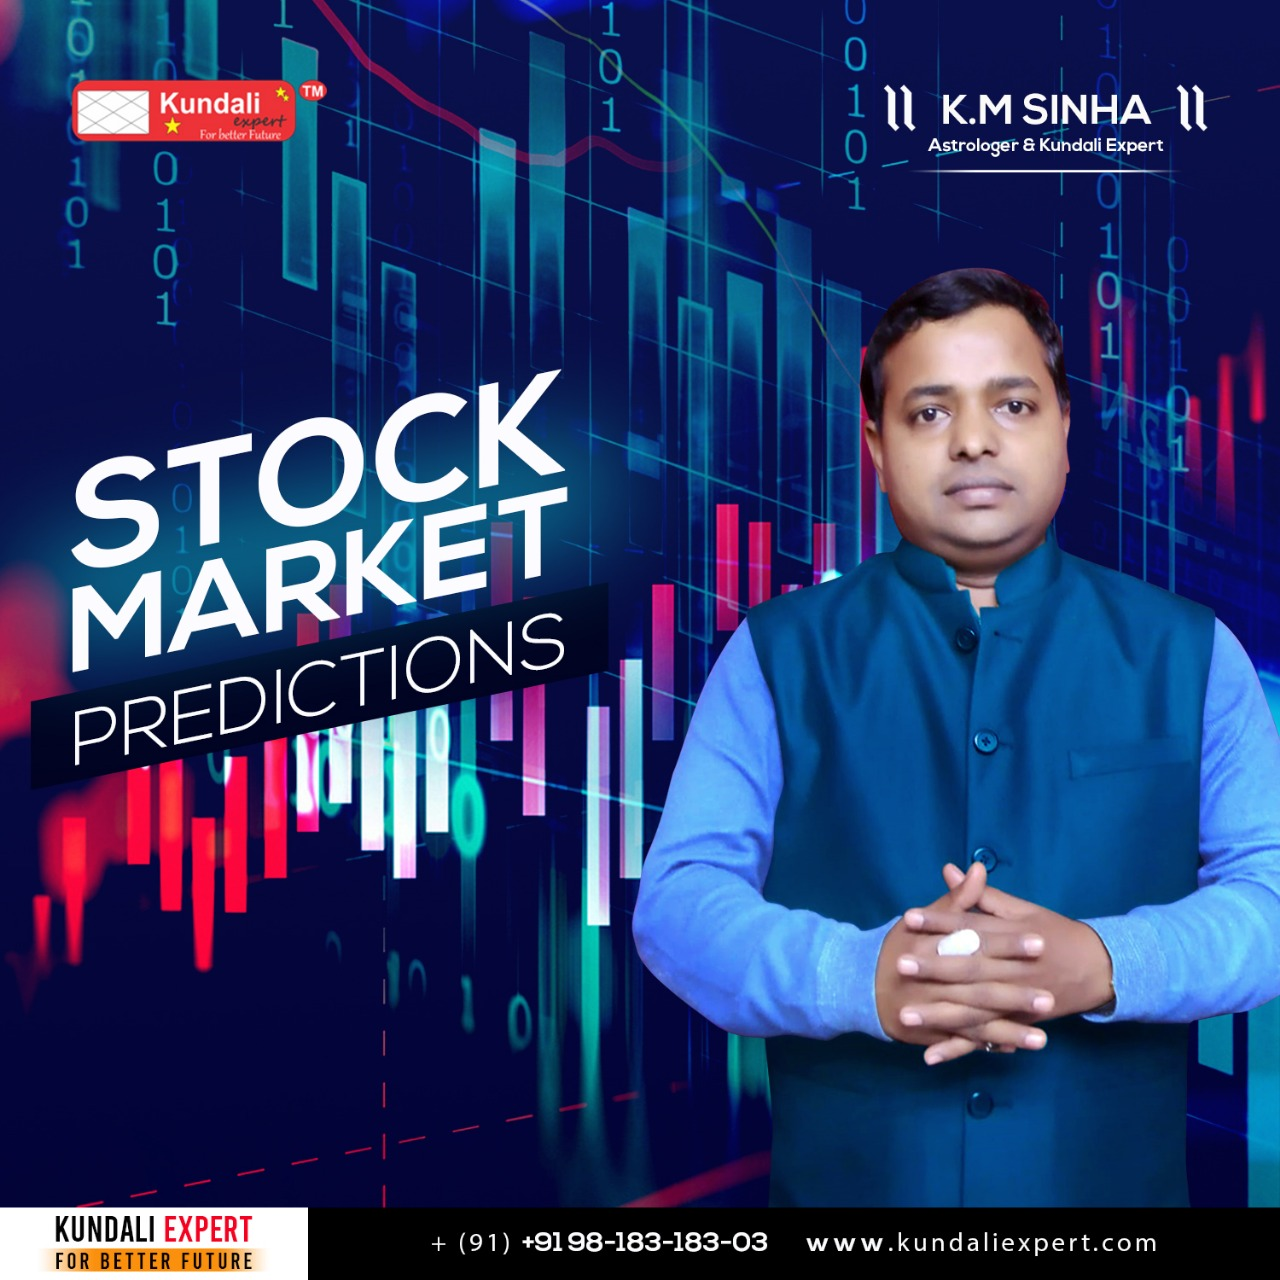 stock market Astrologer KM Sinha